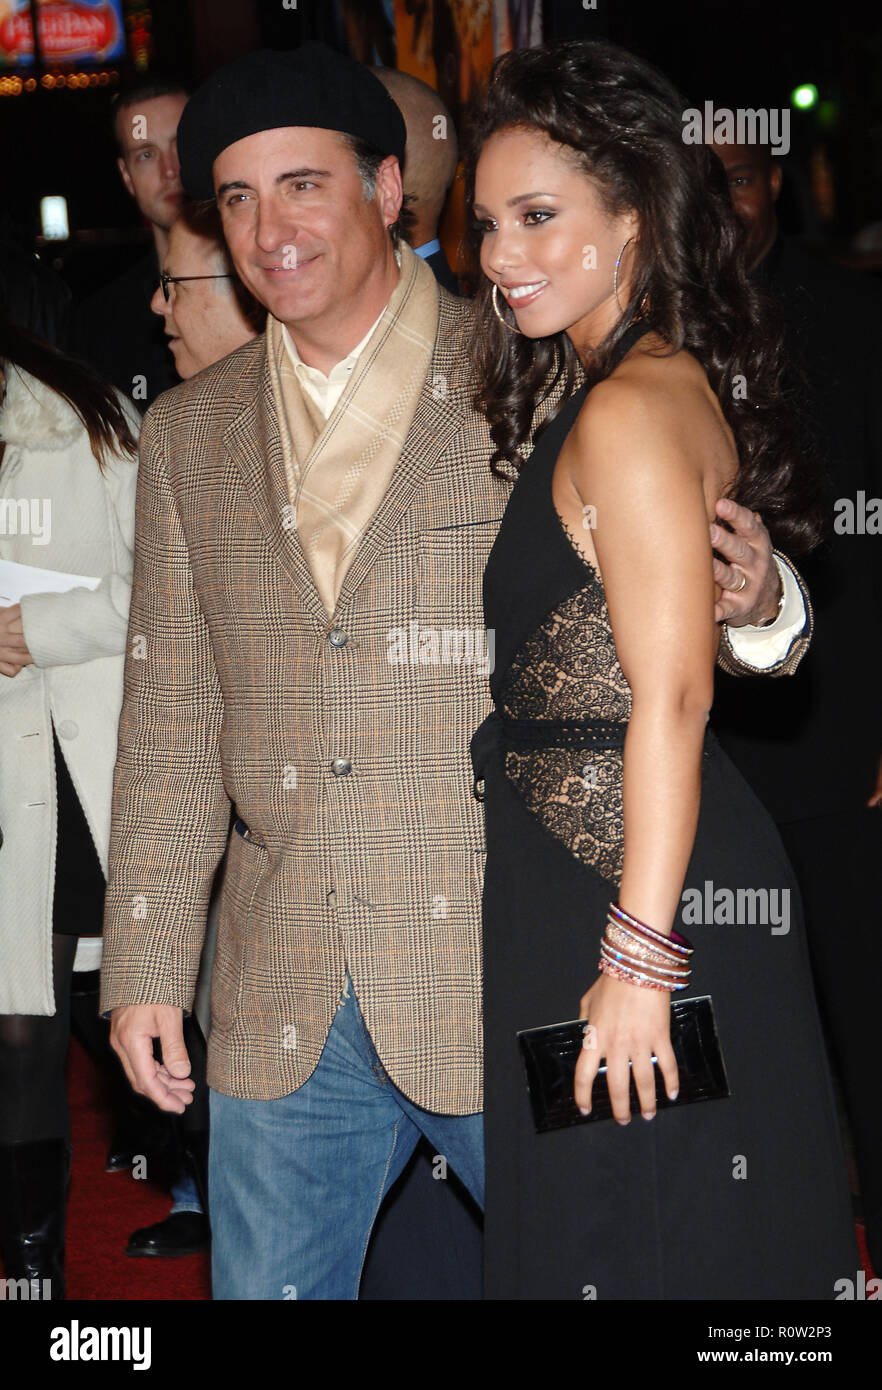 Andy Garcia and Alicia Keys arriving at the Smokin' Aces at the Chinese Theatre In Los Angeles. January 18, 2007.  3/4          -            GarciaAnd - Stock Image